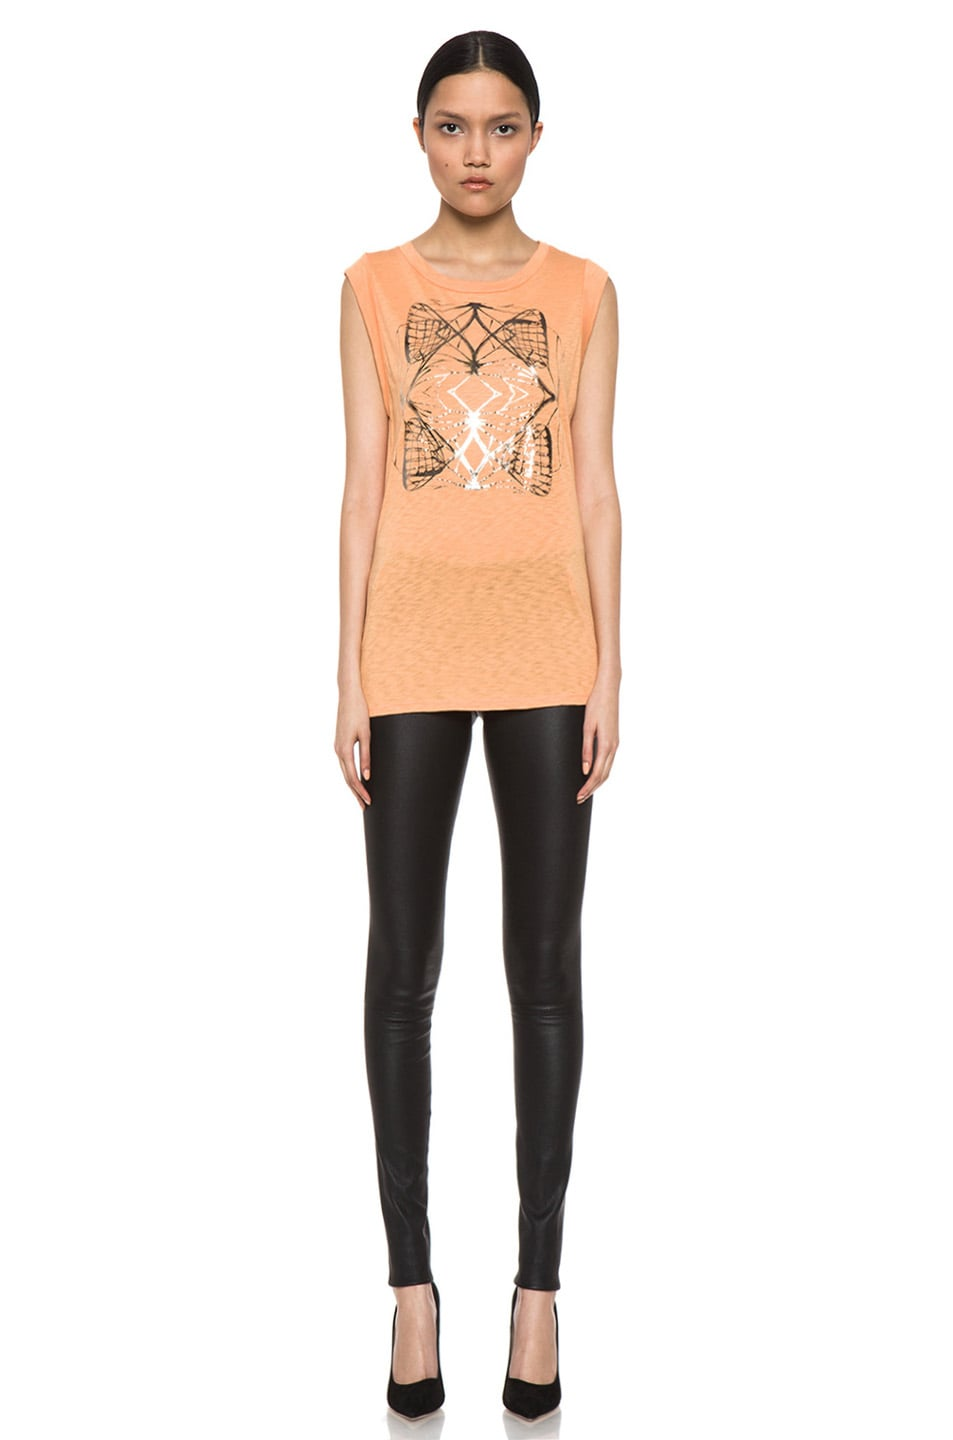 Image 5 of Kelly Wearstler Metallic Cyclone Top in Tangerine & Gunmetal Foil